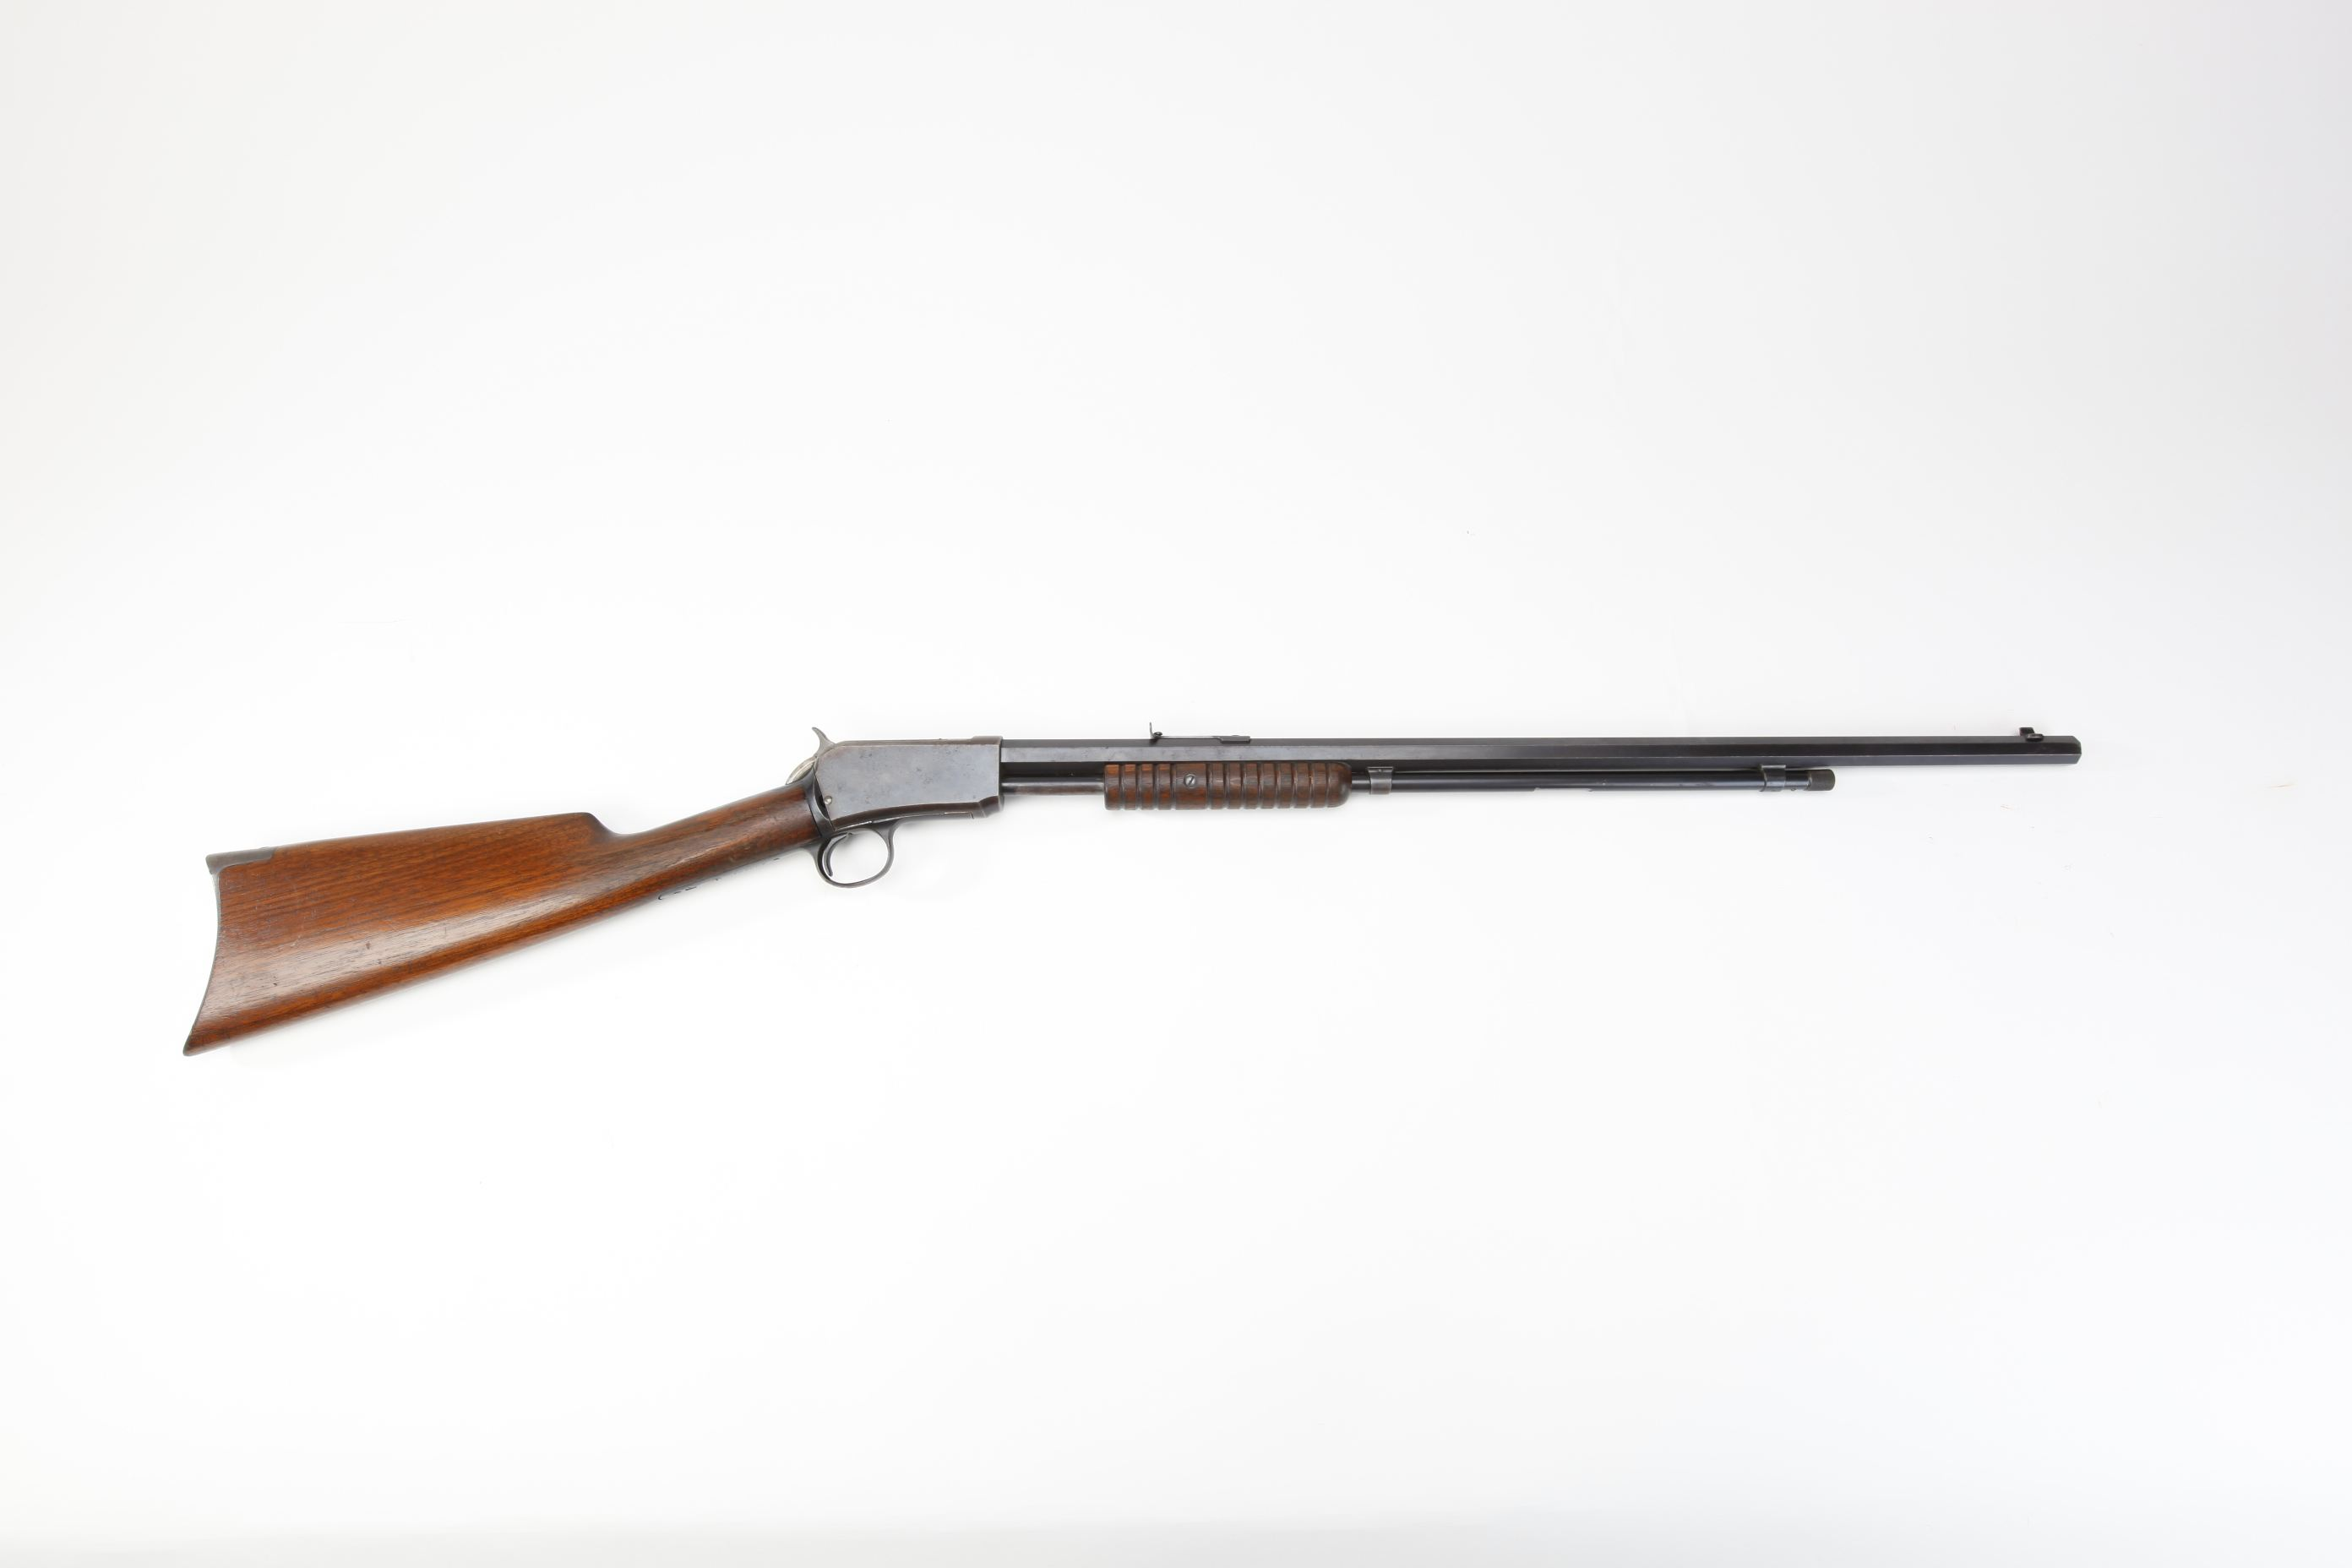 Winchester Model 1890 Slide Action Rifle (11)